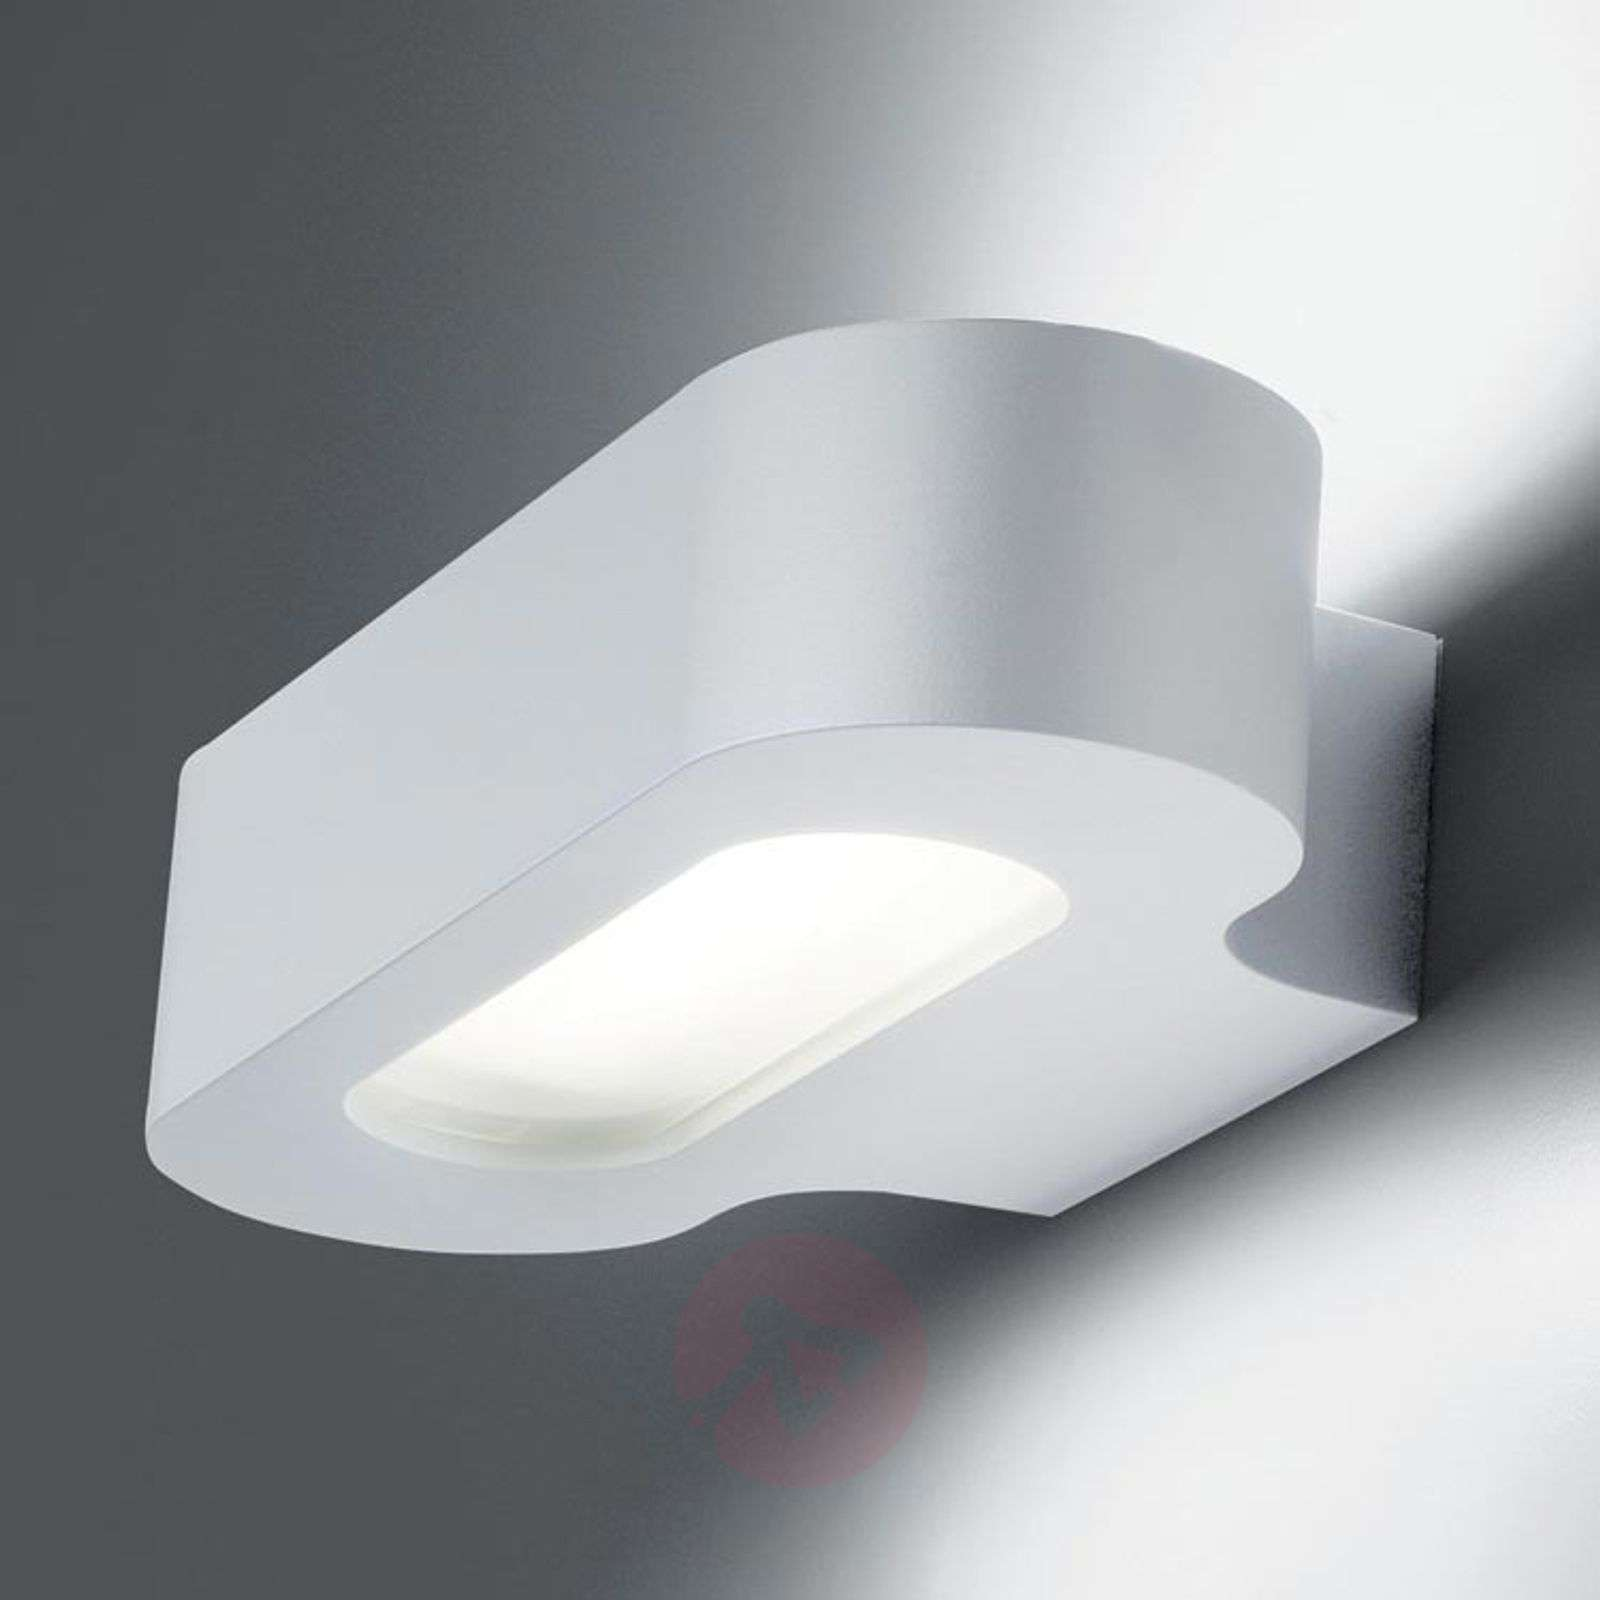 Artemide Talo applique LED 21 cm bianco 2.700 K-1060060-01